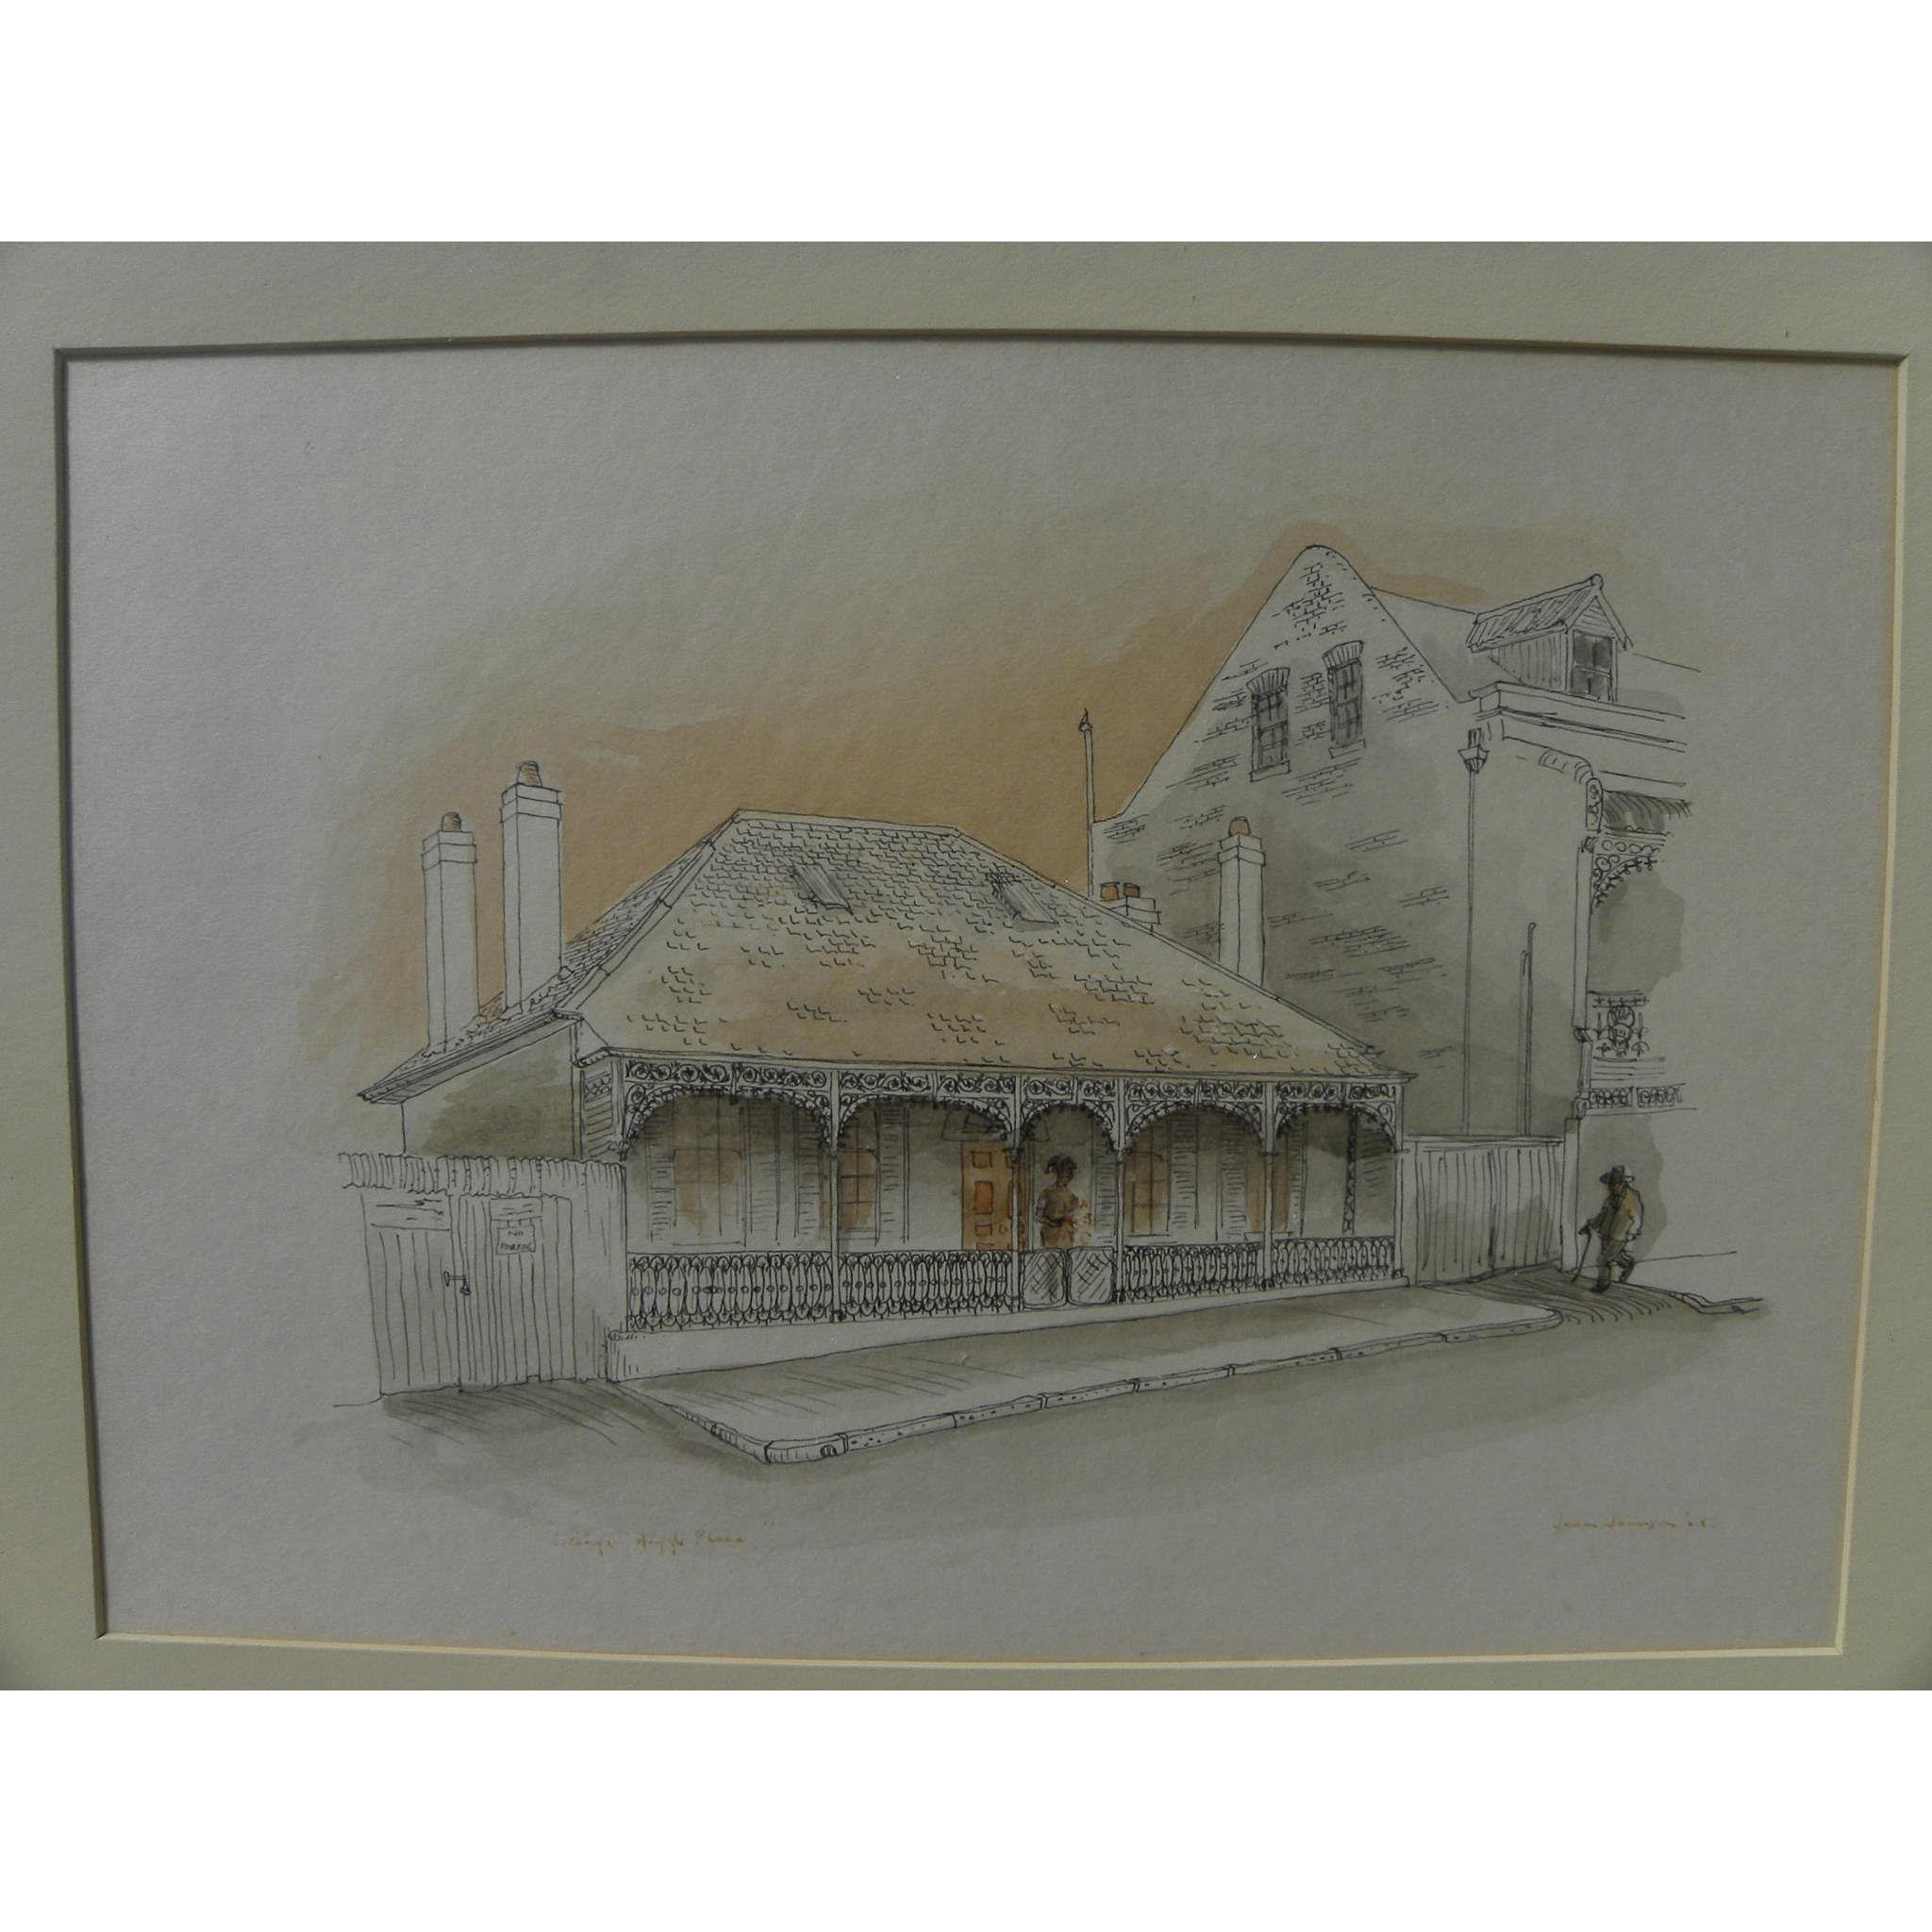 New Orleans art original ink and watercolor drawing of historical houses signed and dated 1968